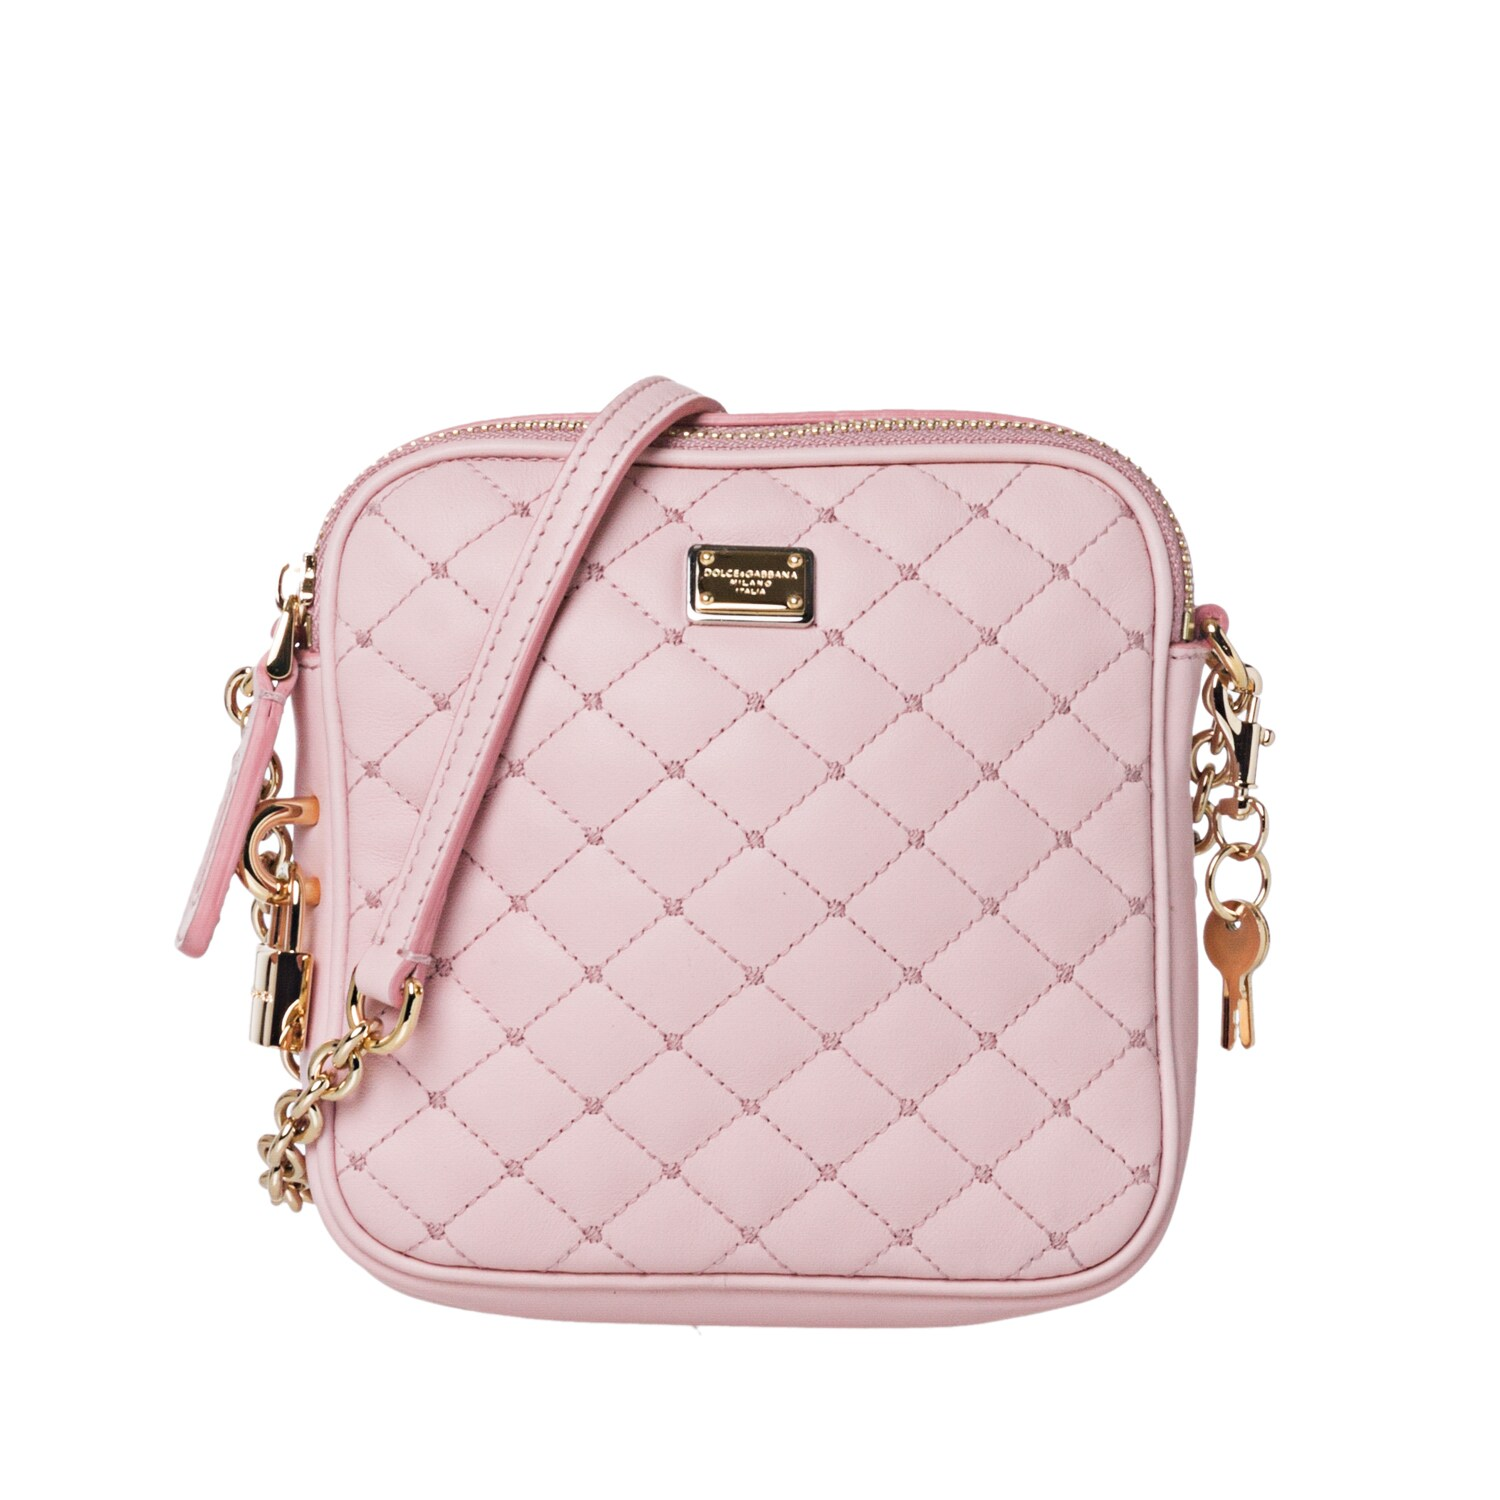 Dolce & Gabbana Baby Pink Quilted Leather Cross-body Bag